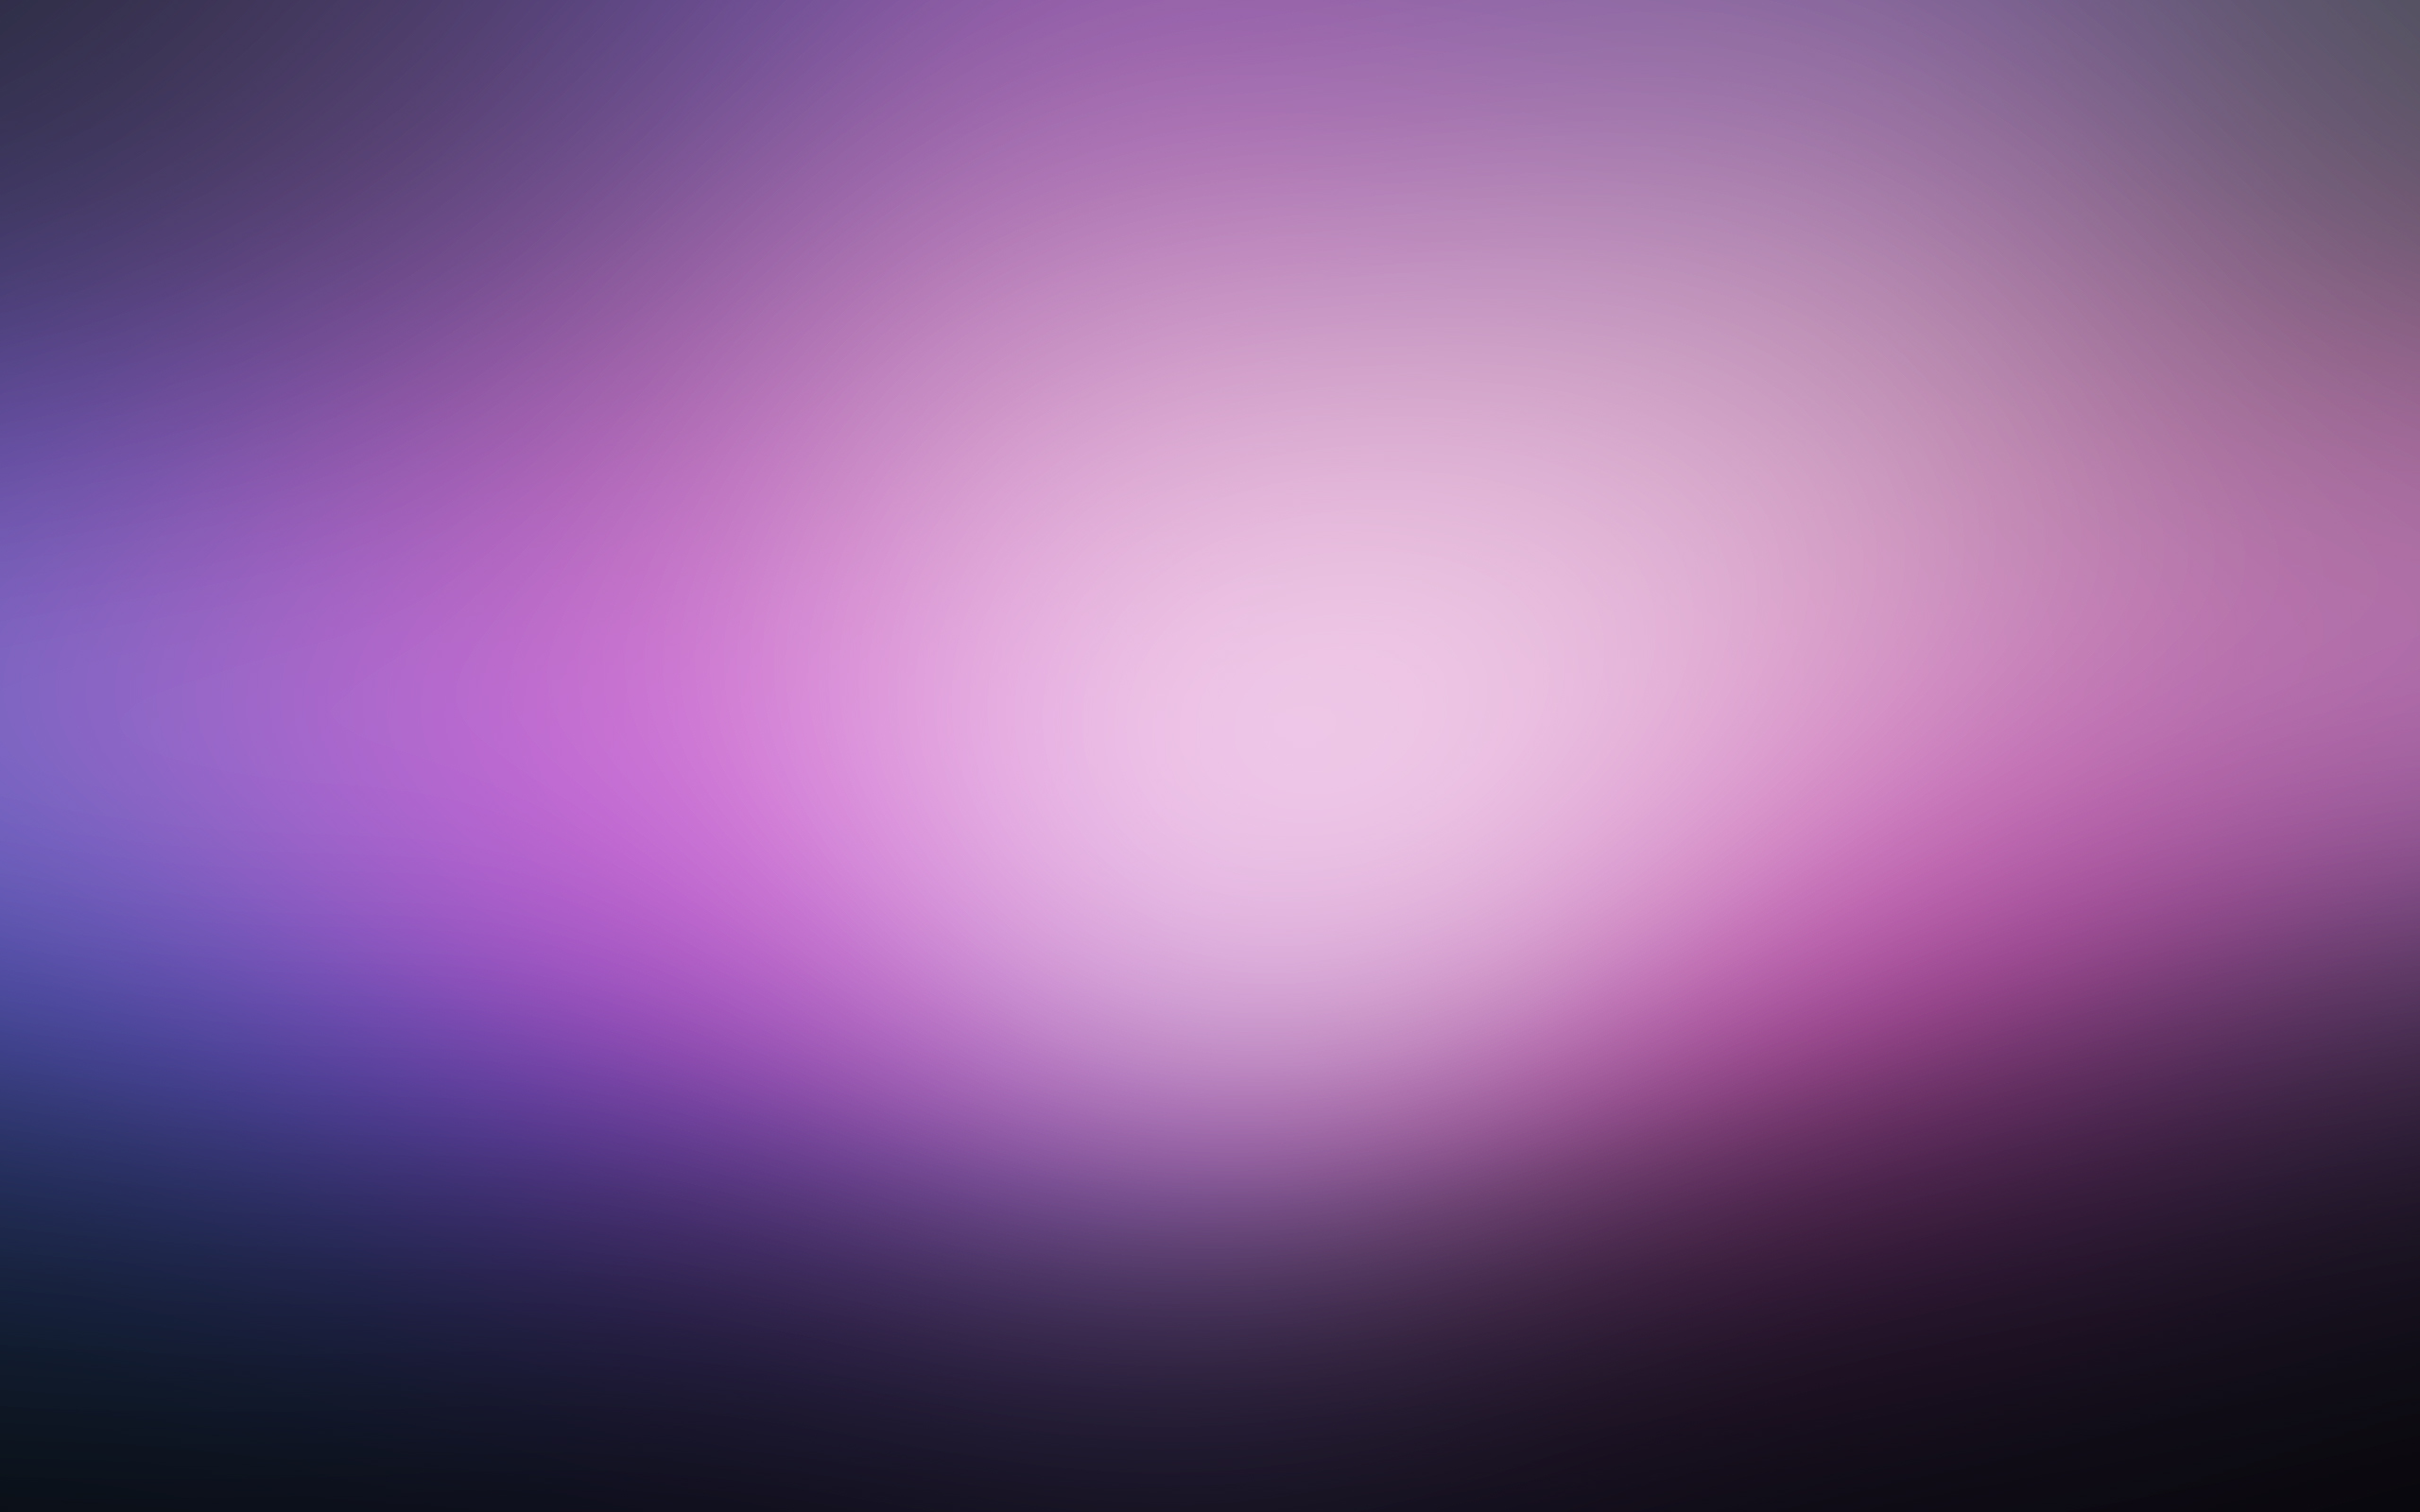 Purple Blur Wallpaper